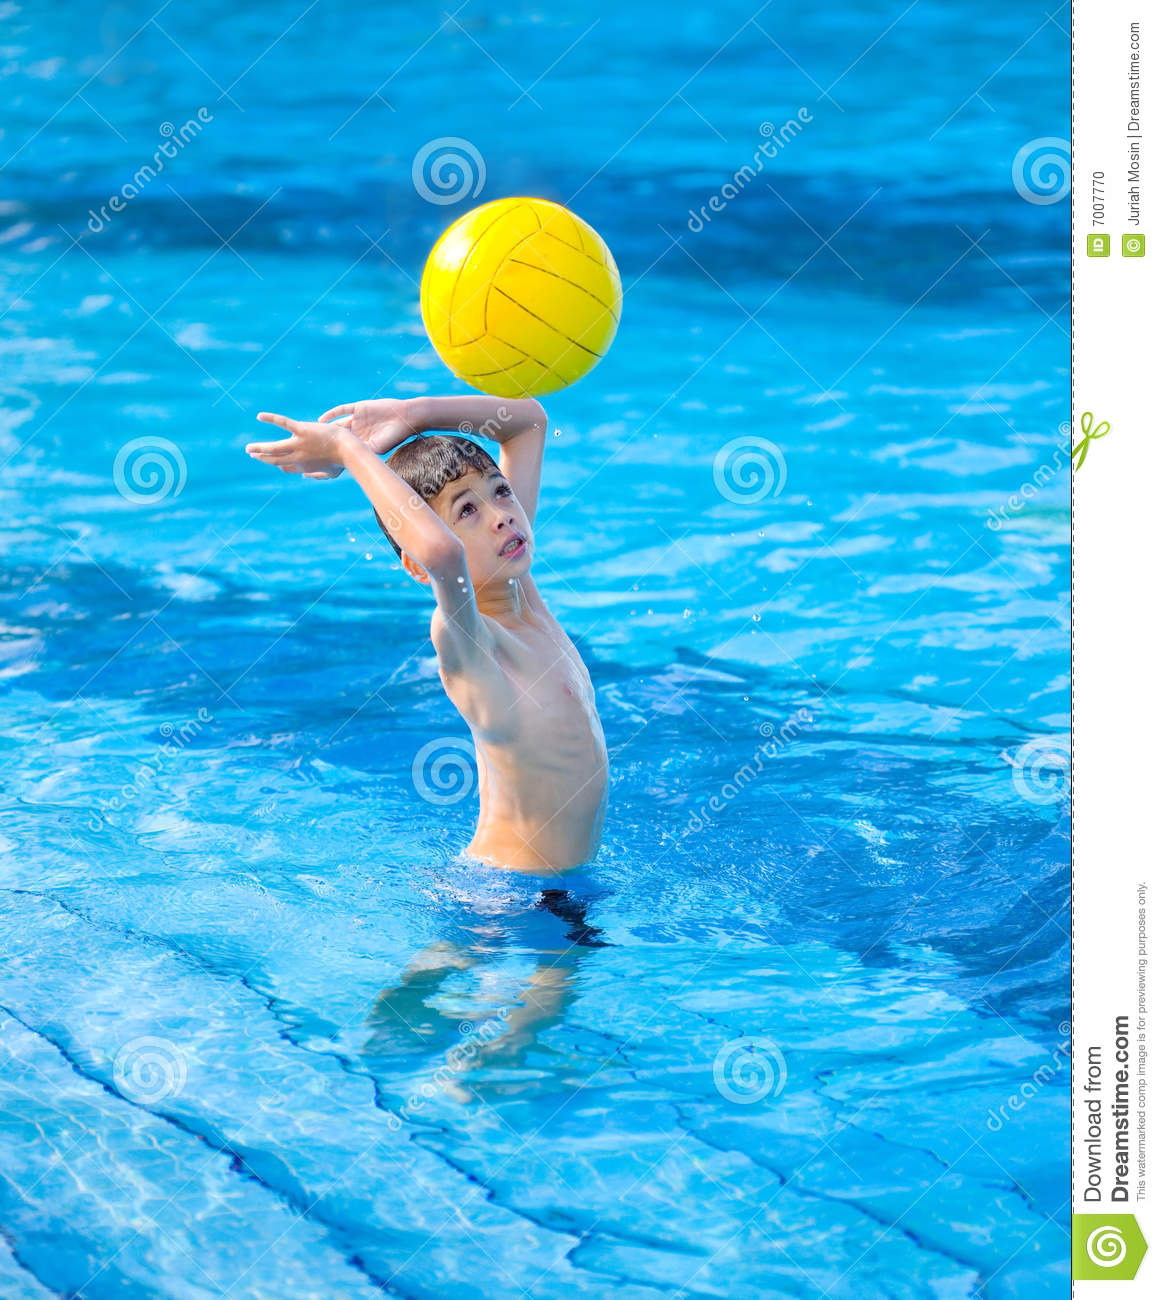 Boy About To Hit A Ball In Swimming Pool Stock Photo Image Of Polo Head 7007770